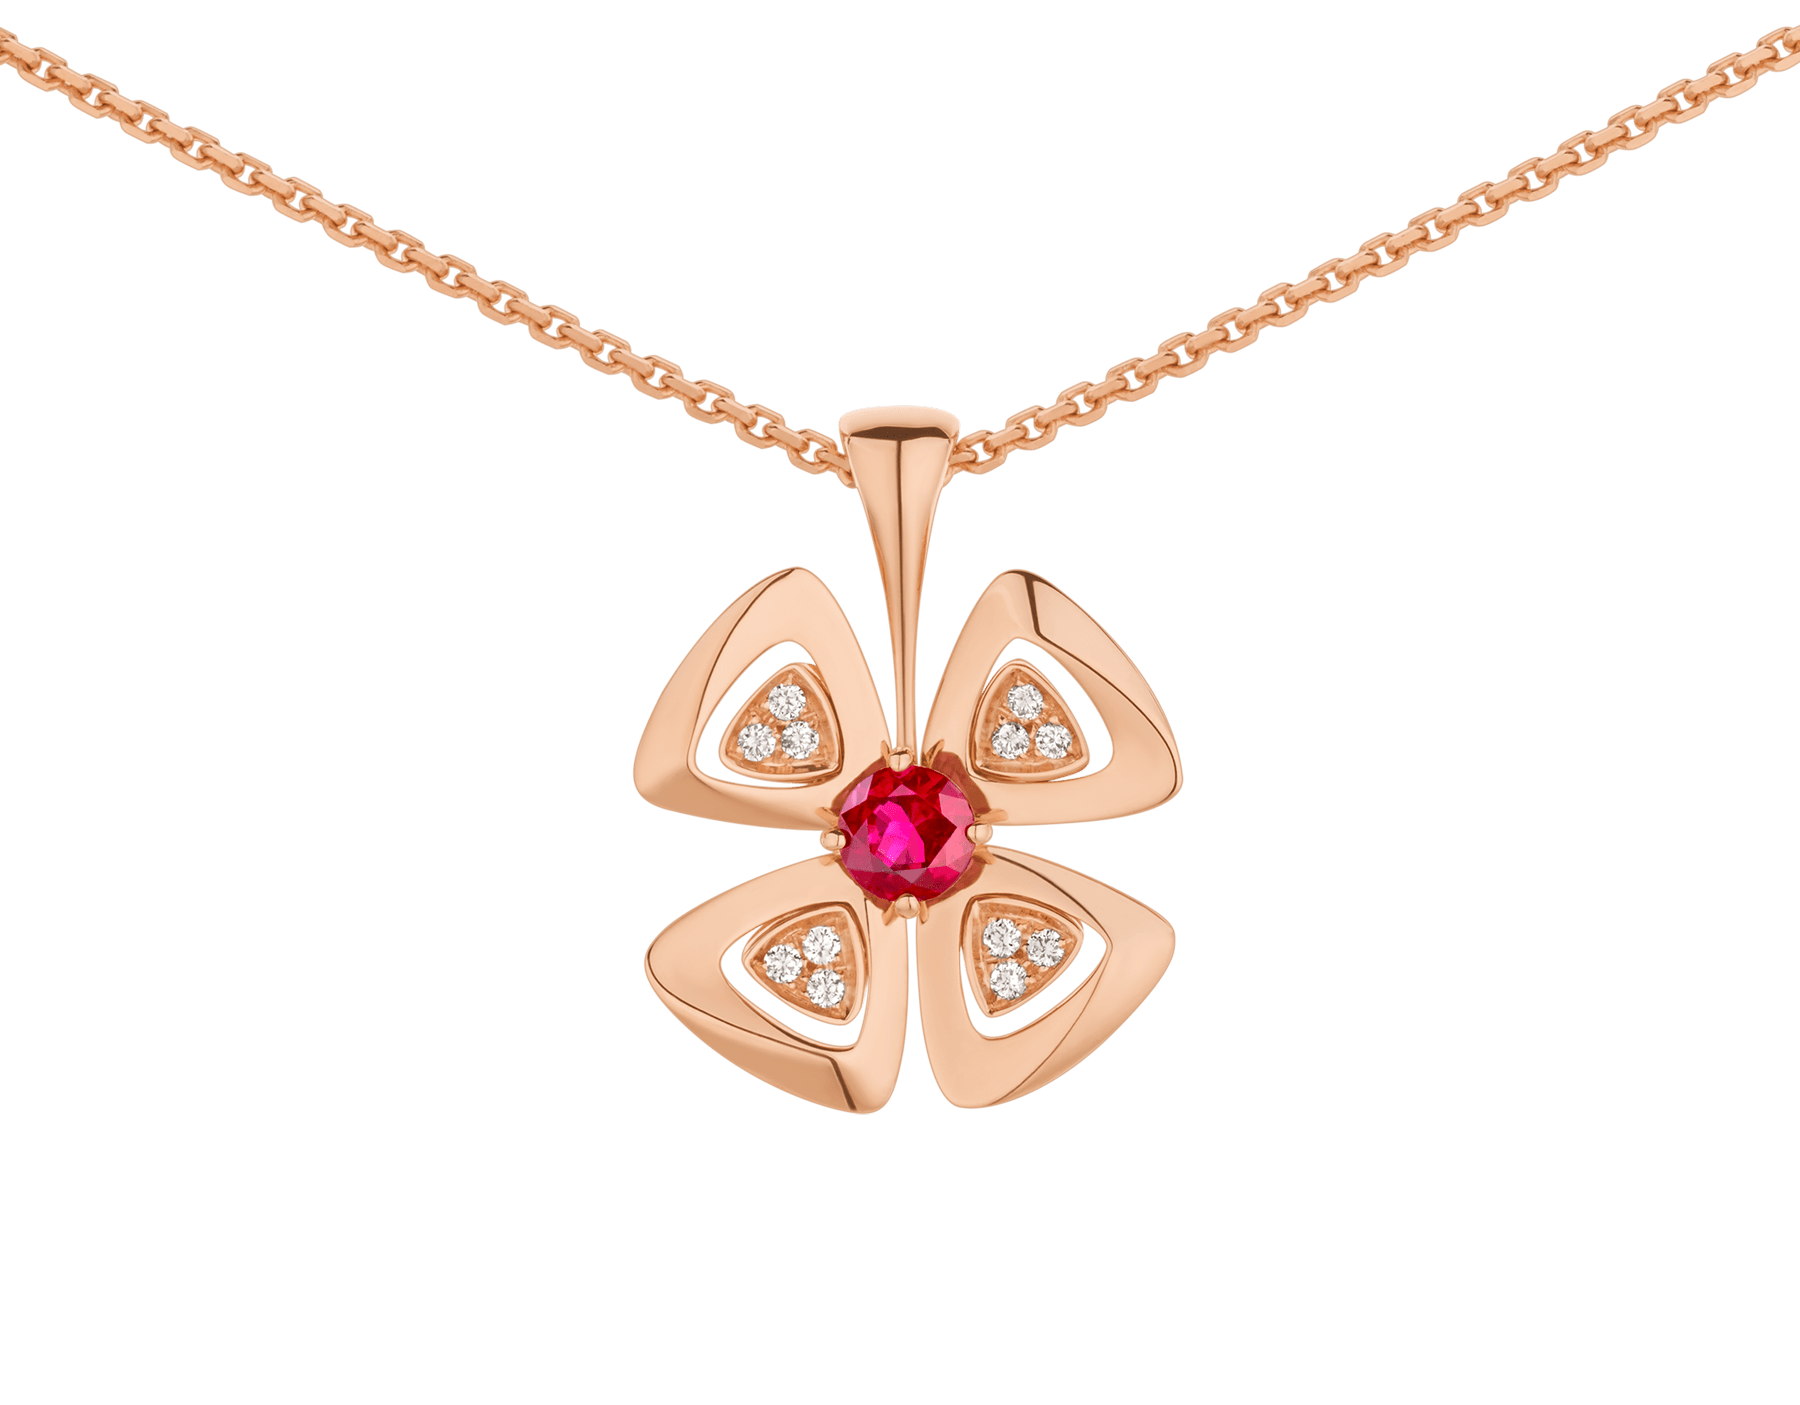 Fiorever 18 kt rose gold pendant necklace set with a central ruby (0.30 ct) and pavé diamonds. Special Edition 357759 image 3